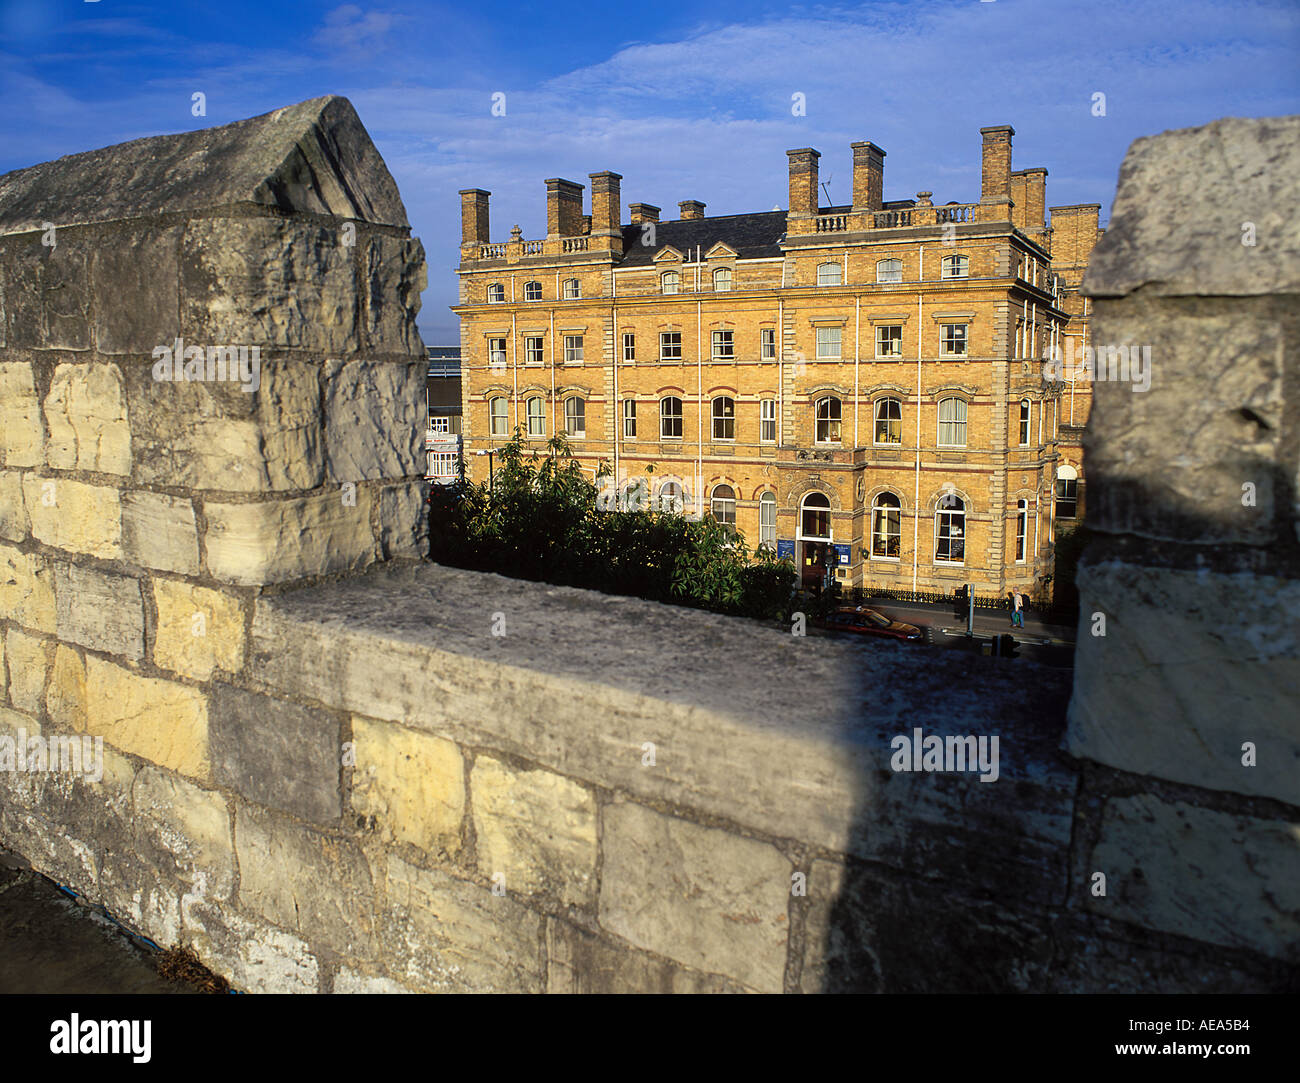 Grand Victorian Hotel purpose built for the railway York as viewed from York city walls - Stock Image